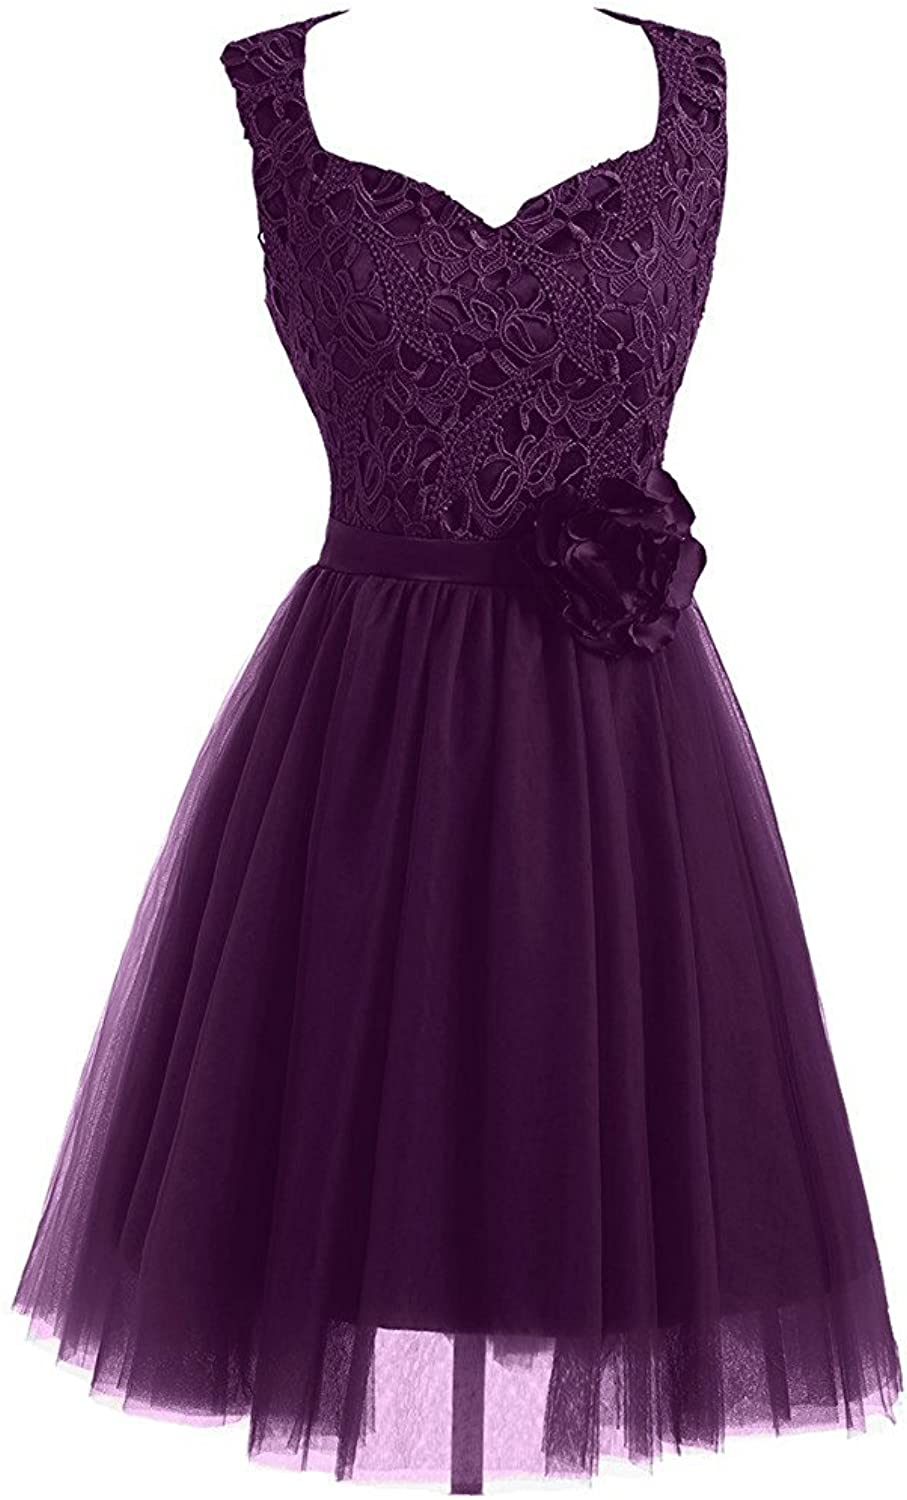 DINGZAN Cute Lace and Tulle Evening Cocktail Prom Homecoming Dreses Short